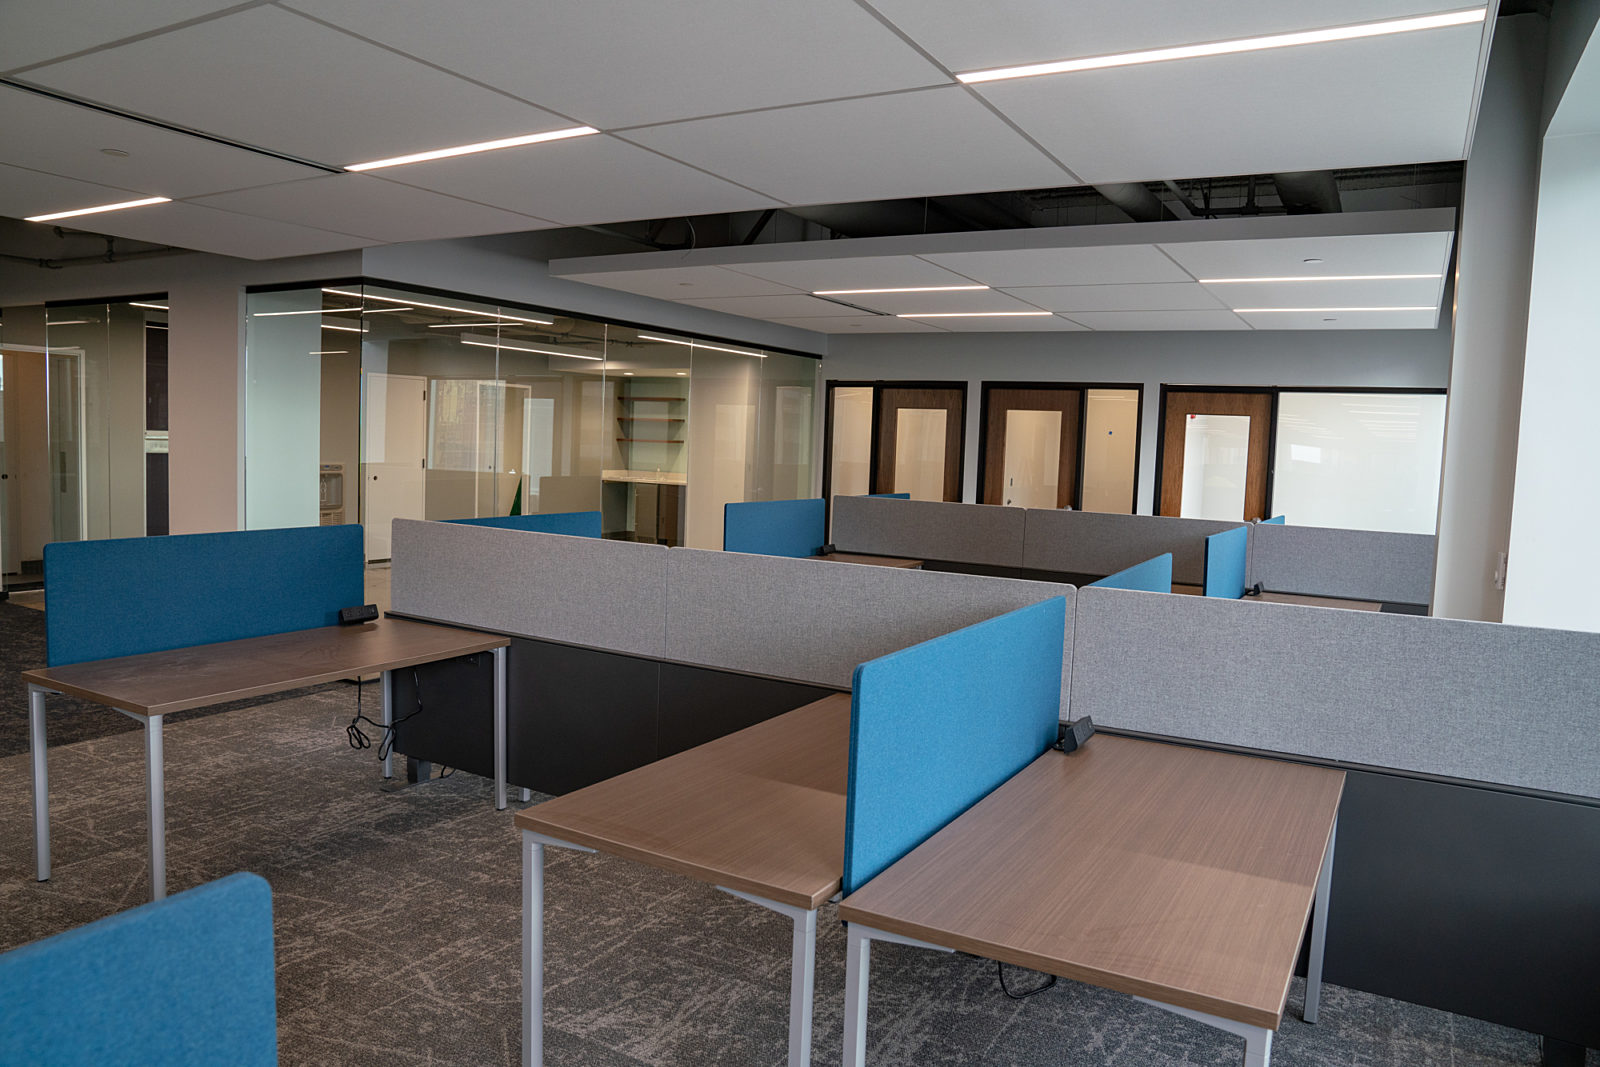 Lev Project Highlight: desk spaces with dividers